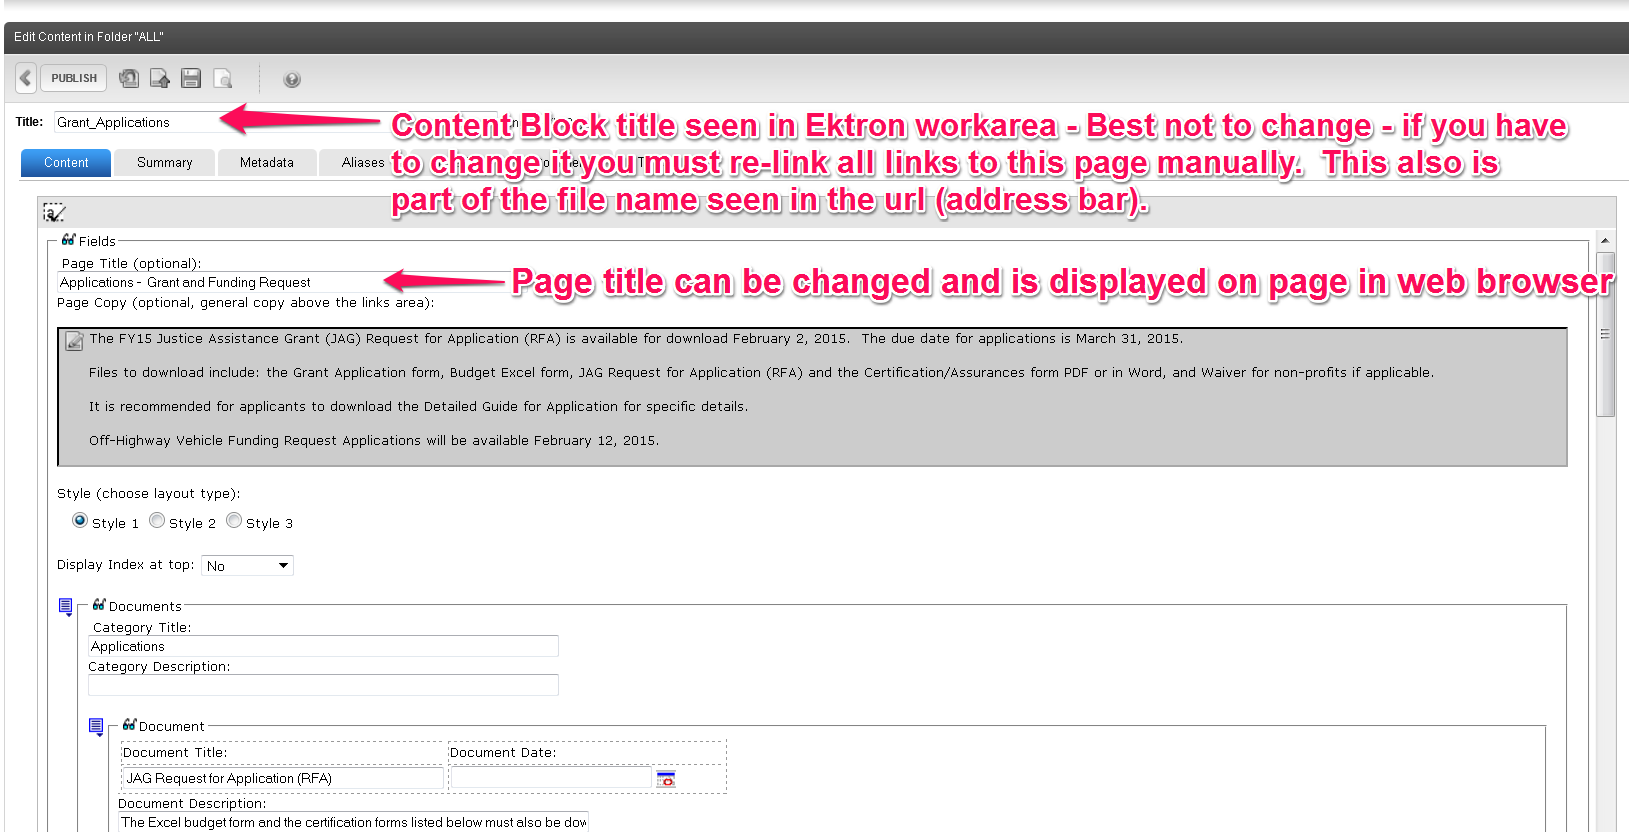 Difference between Content Block title and Page